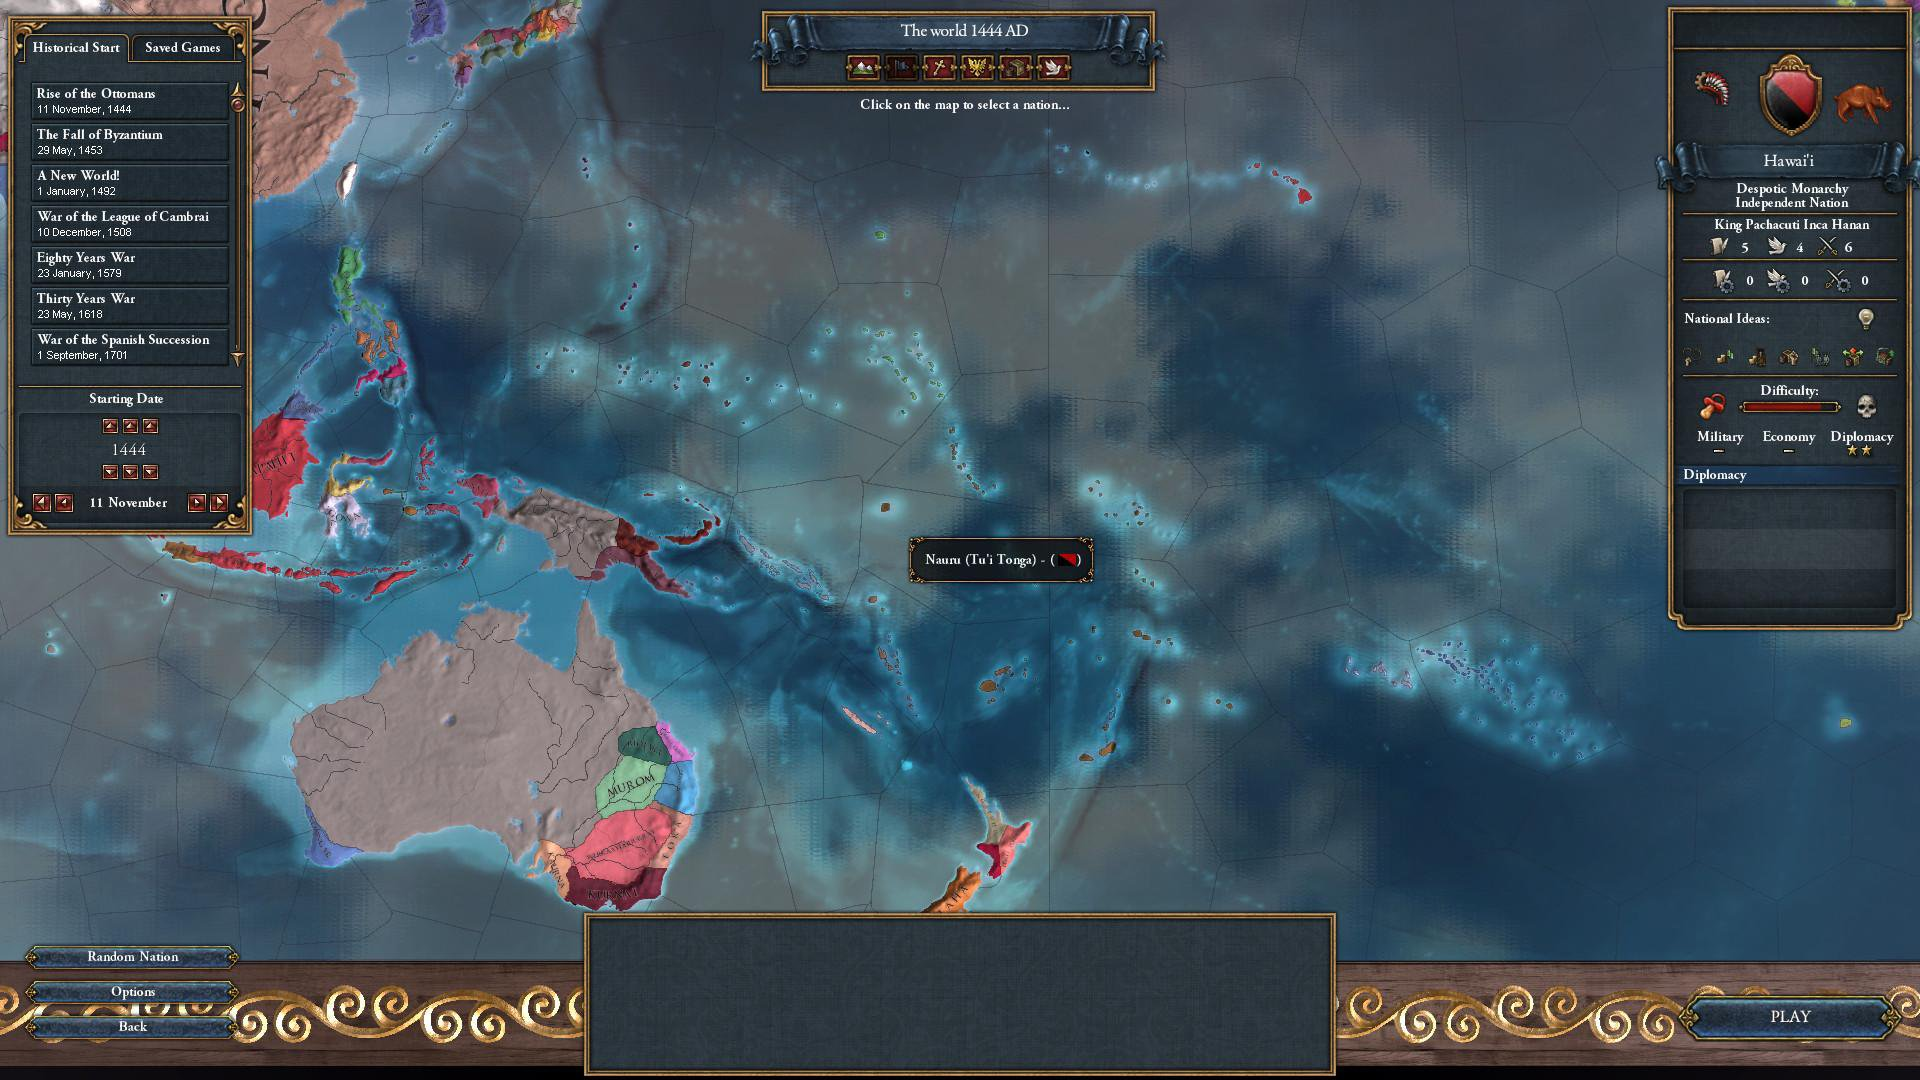 Download web tool or web app Europa Universalis IV: Homo Sapiens Mod to run in Windows online over Linux online